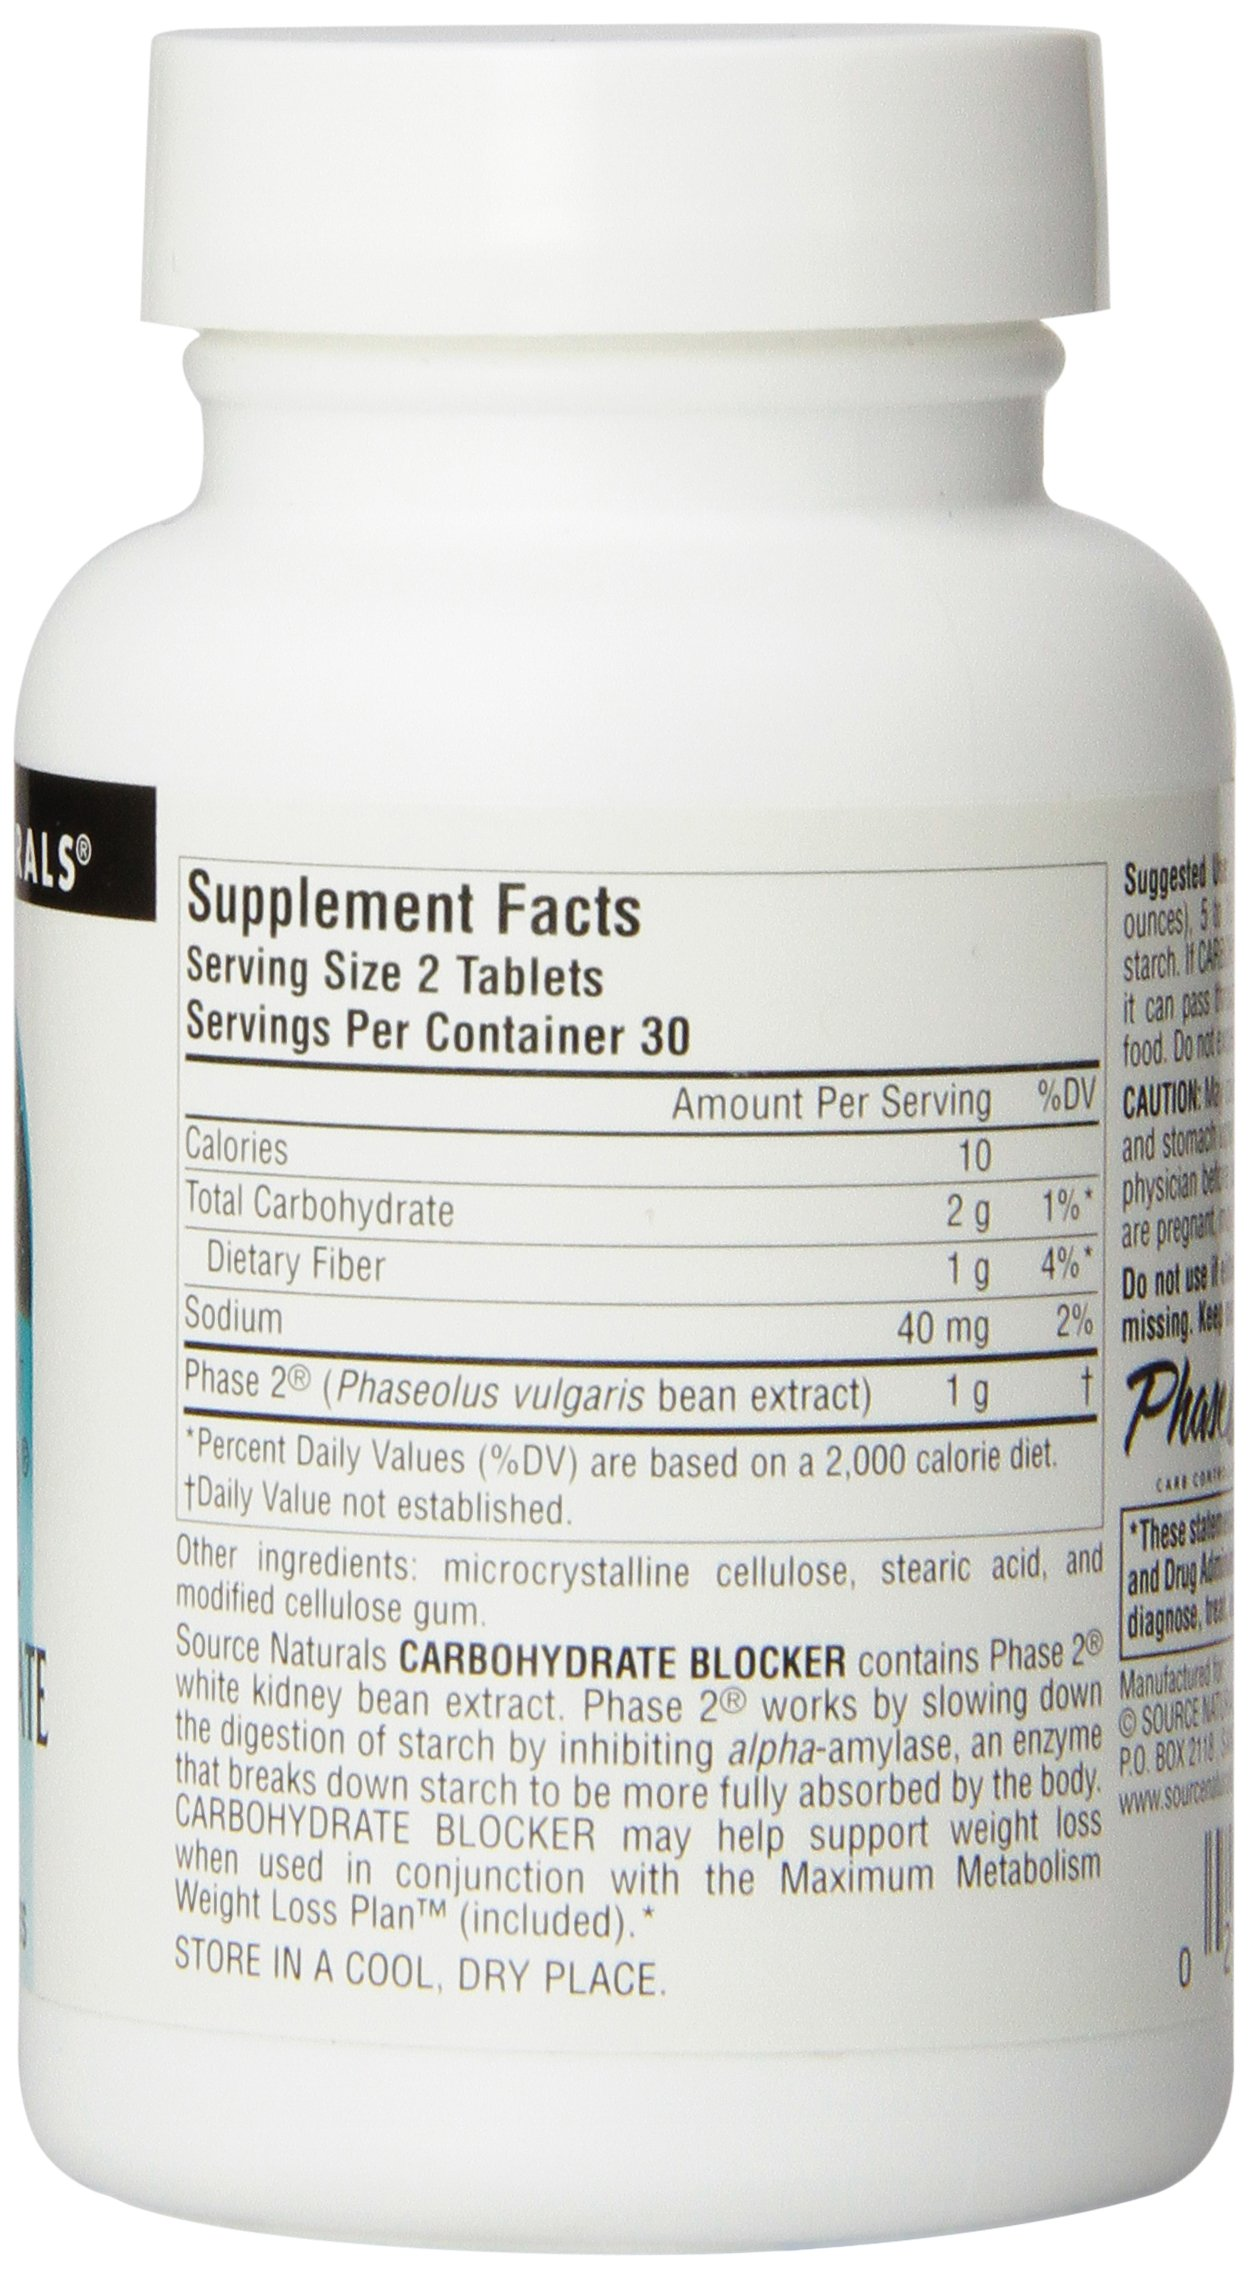 SOURCE NATURALS Phase 2 Carbohydrate Blocker 500 Mg Tablet, 60 Count by Source Naturals